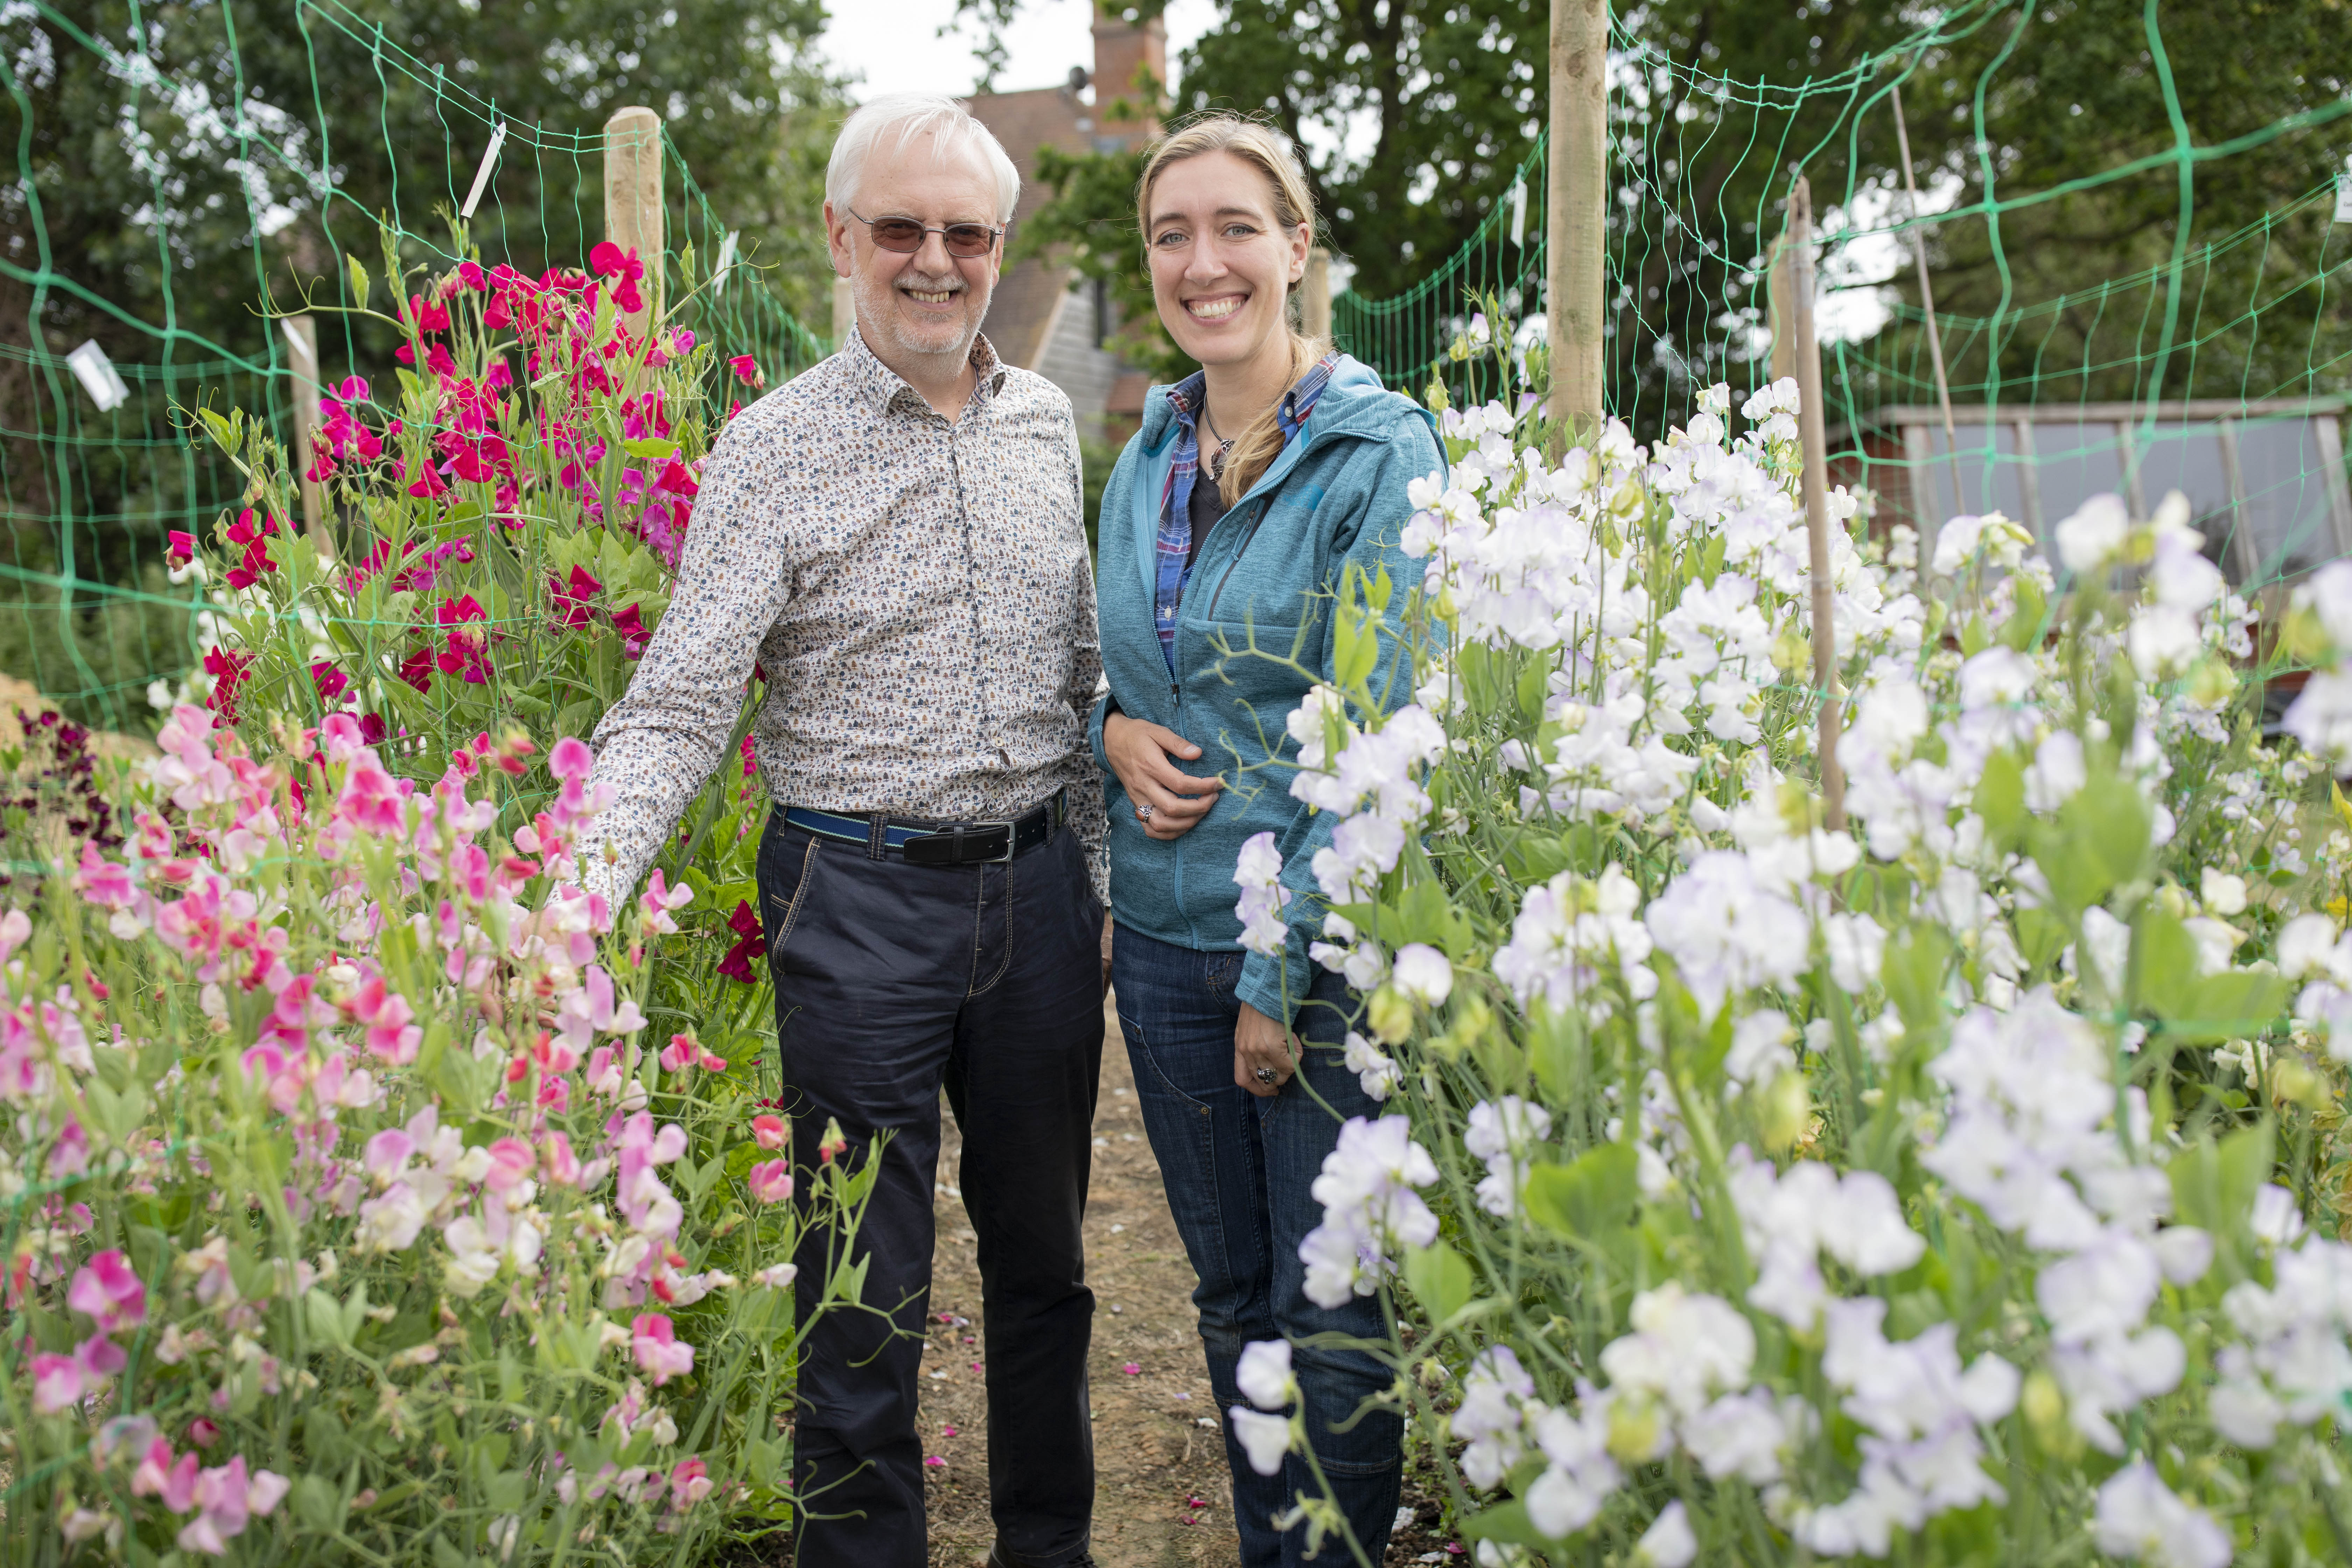 Erin visited Roger Parsons Sweet Peas in 2019